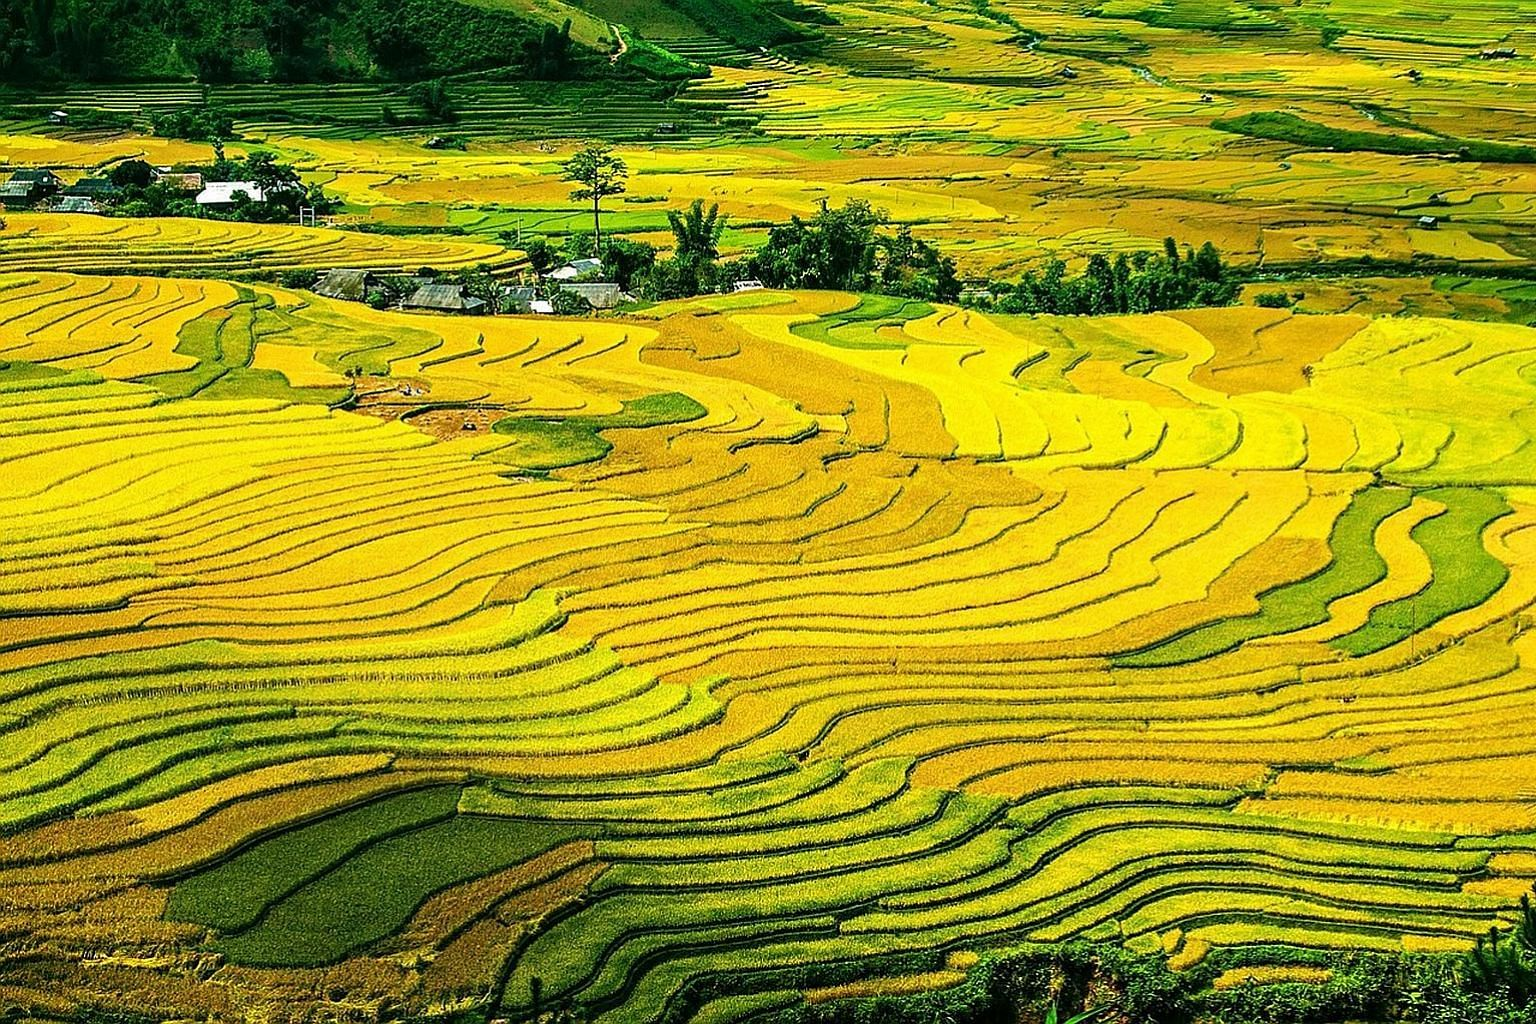 Bali's famous rice terraces look like colourful mosaics because some farmers plant synchronously, while others do so at different times. The resulting fractal patterns are rare for man-made systems and lead to optimal harvests without global planning